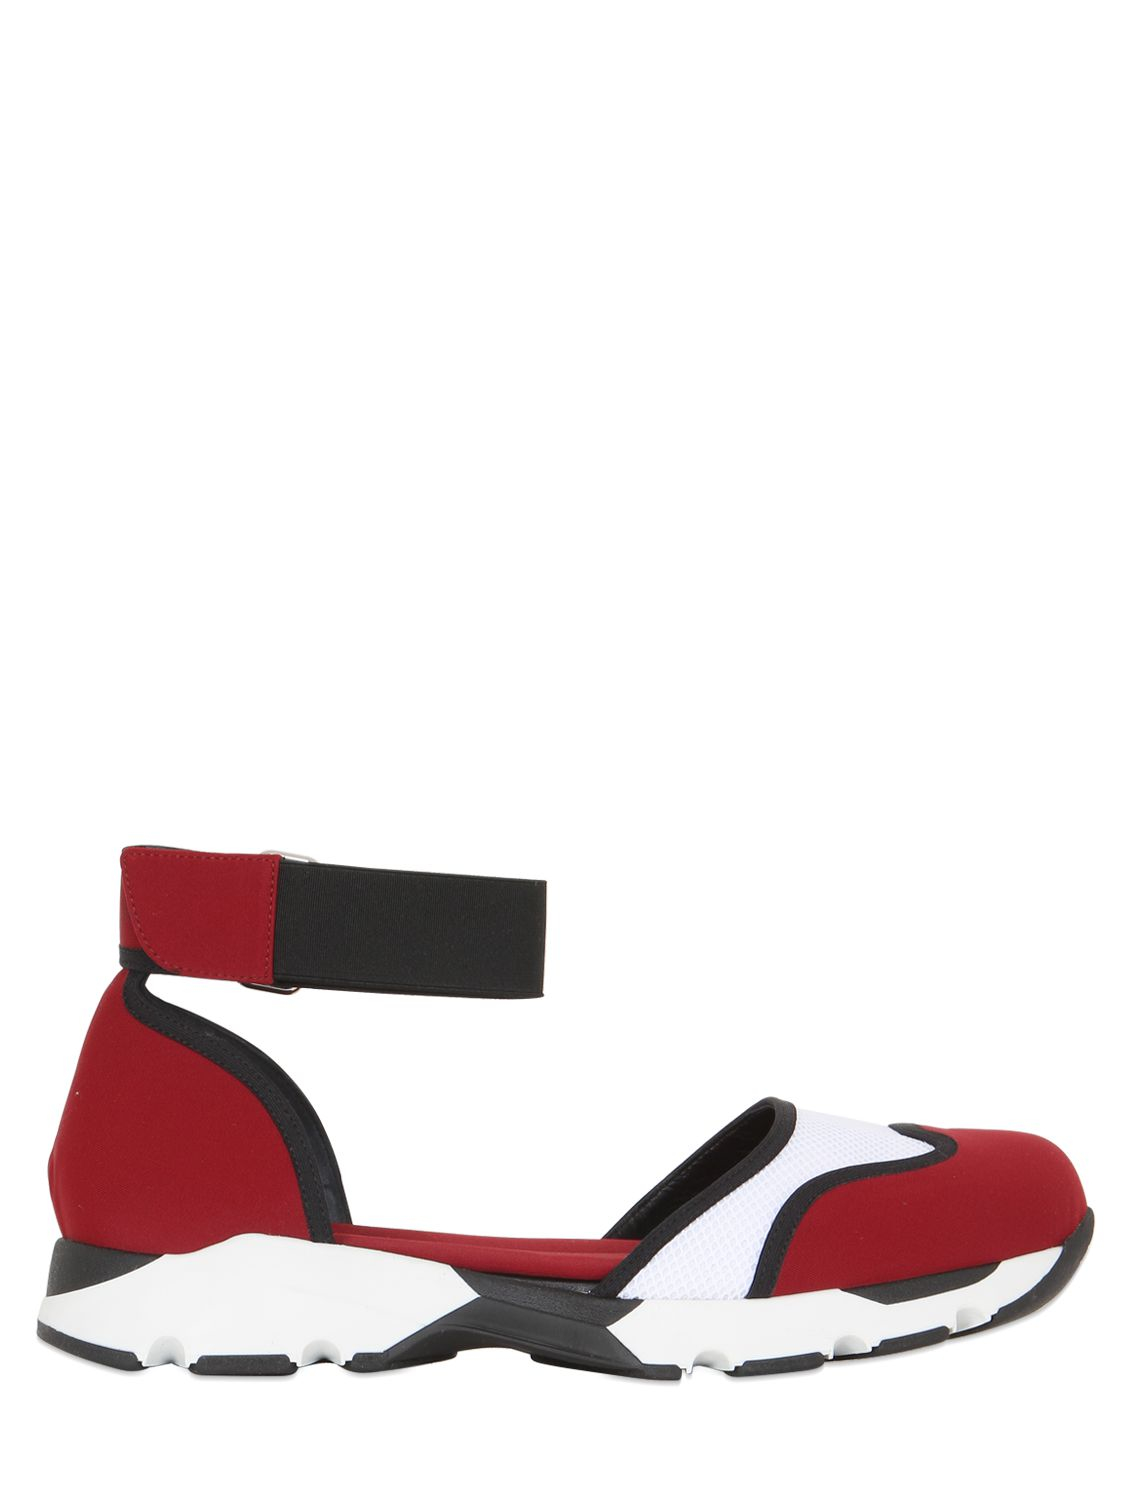 Marni 30MM MARY JANE LEATHER & MESH SNEAKERS SUPe1UCQNB